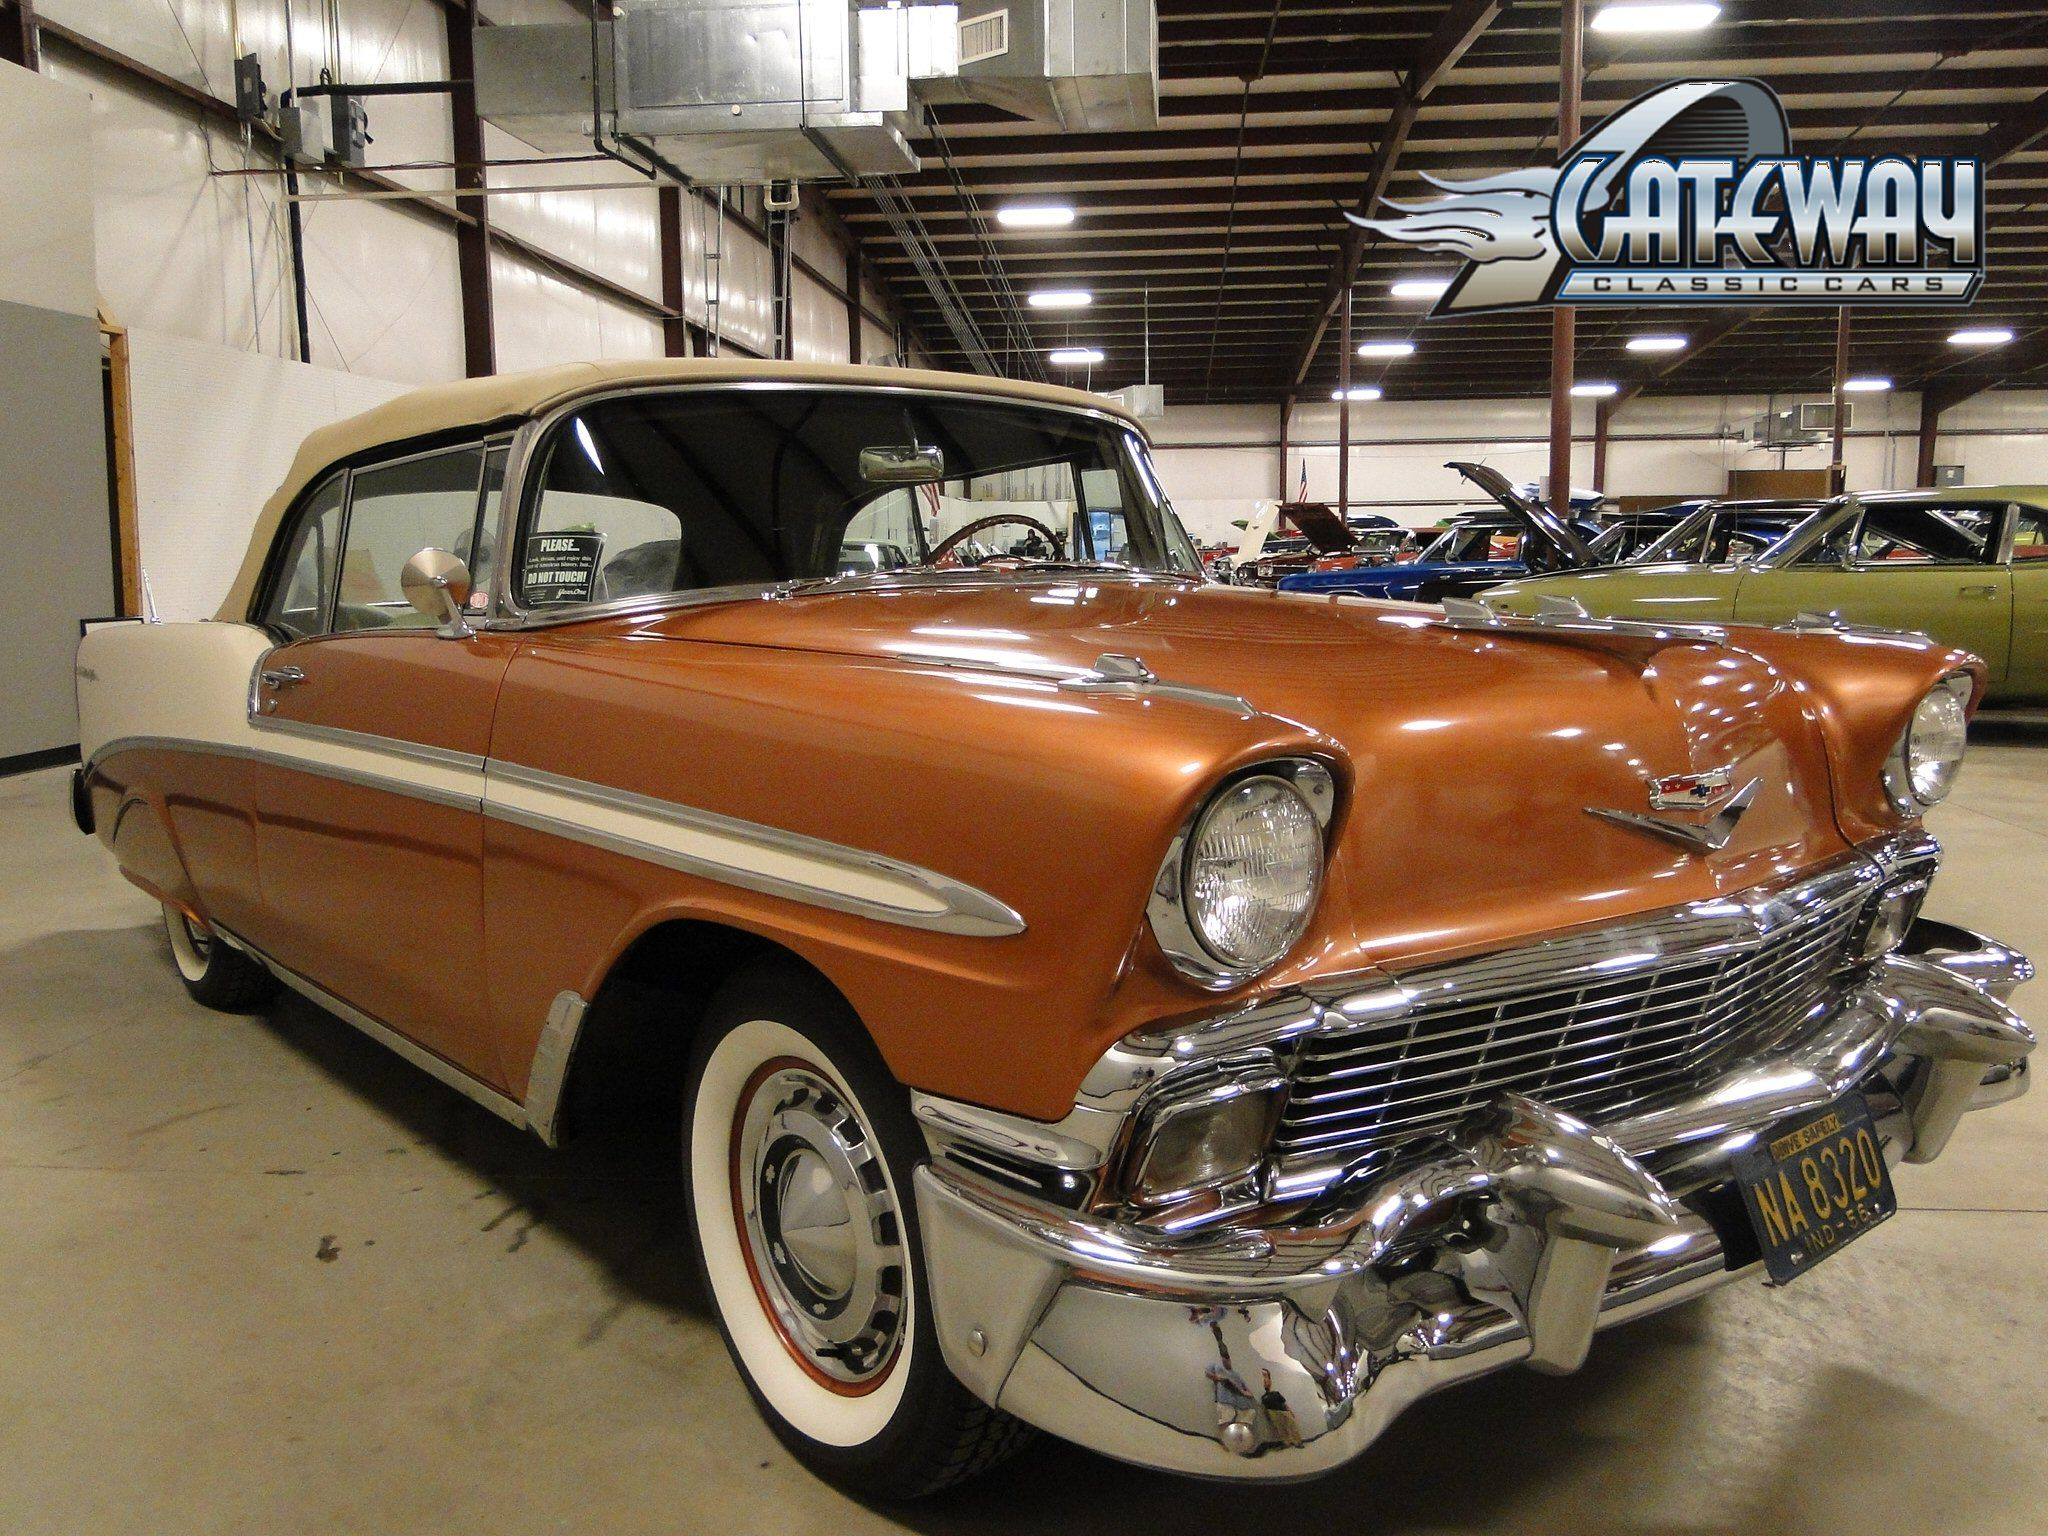 1956 Chevrolet Bel Air Convertible (avec images)